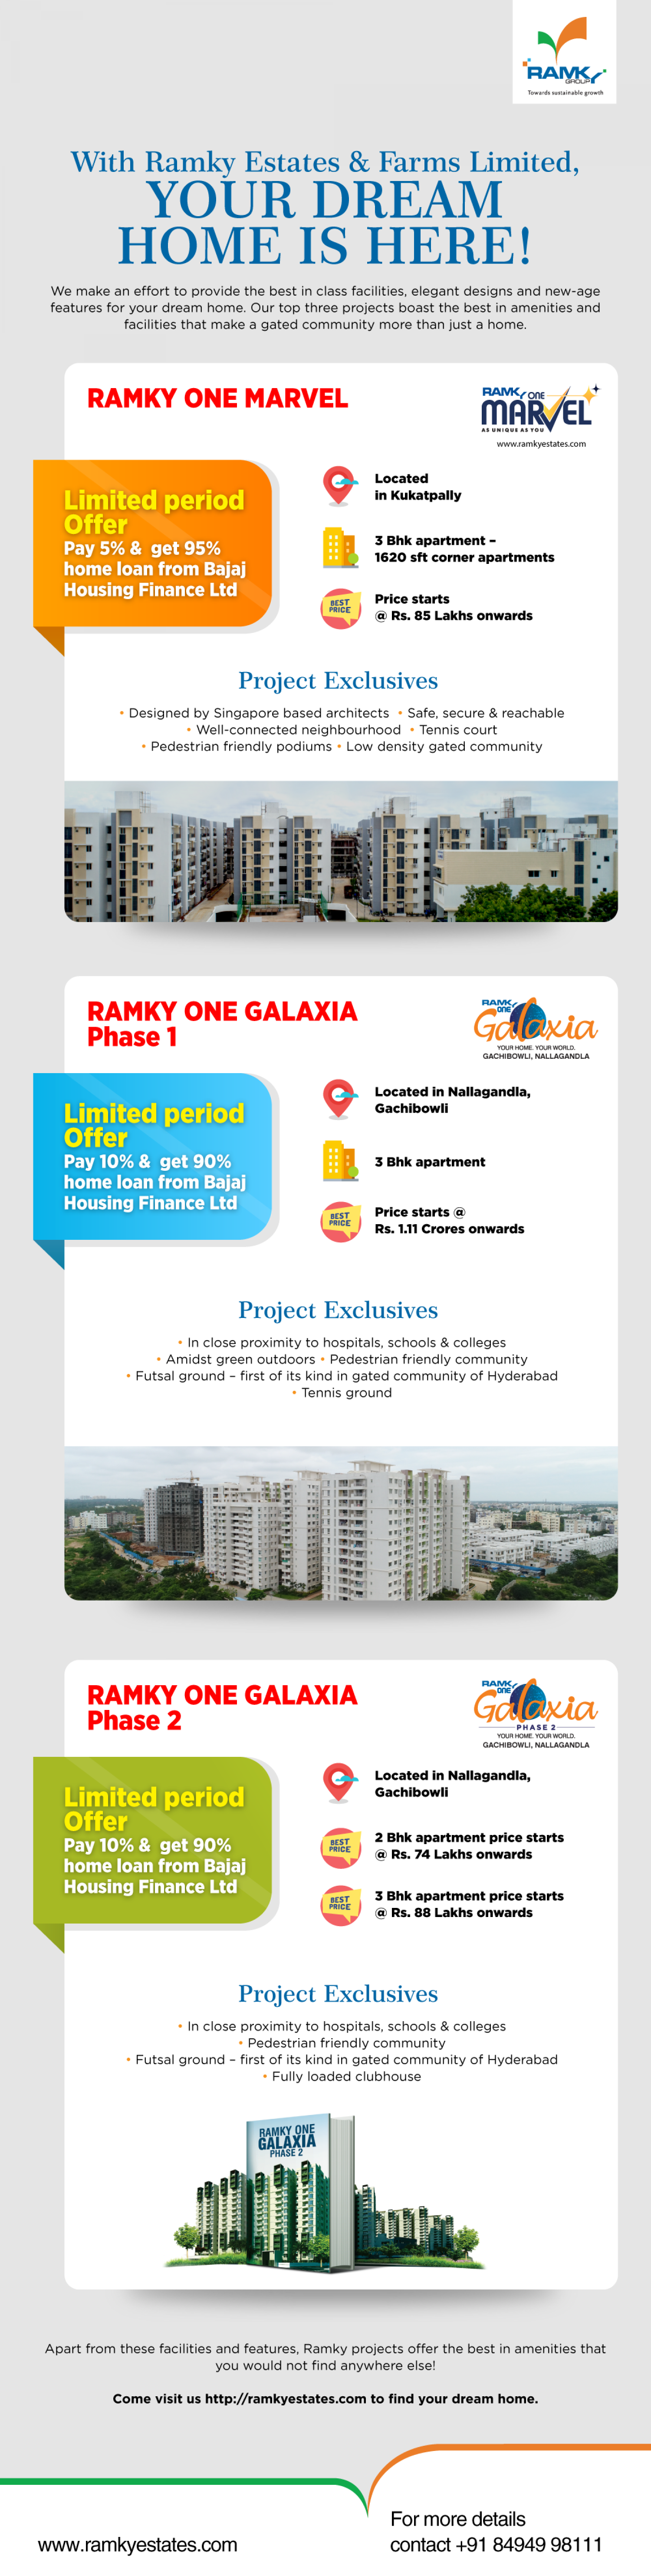 Find Your Dream Home With Ramky Estates & Farms Ltd